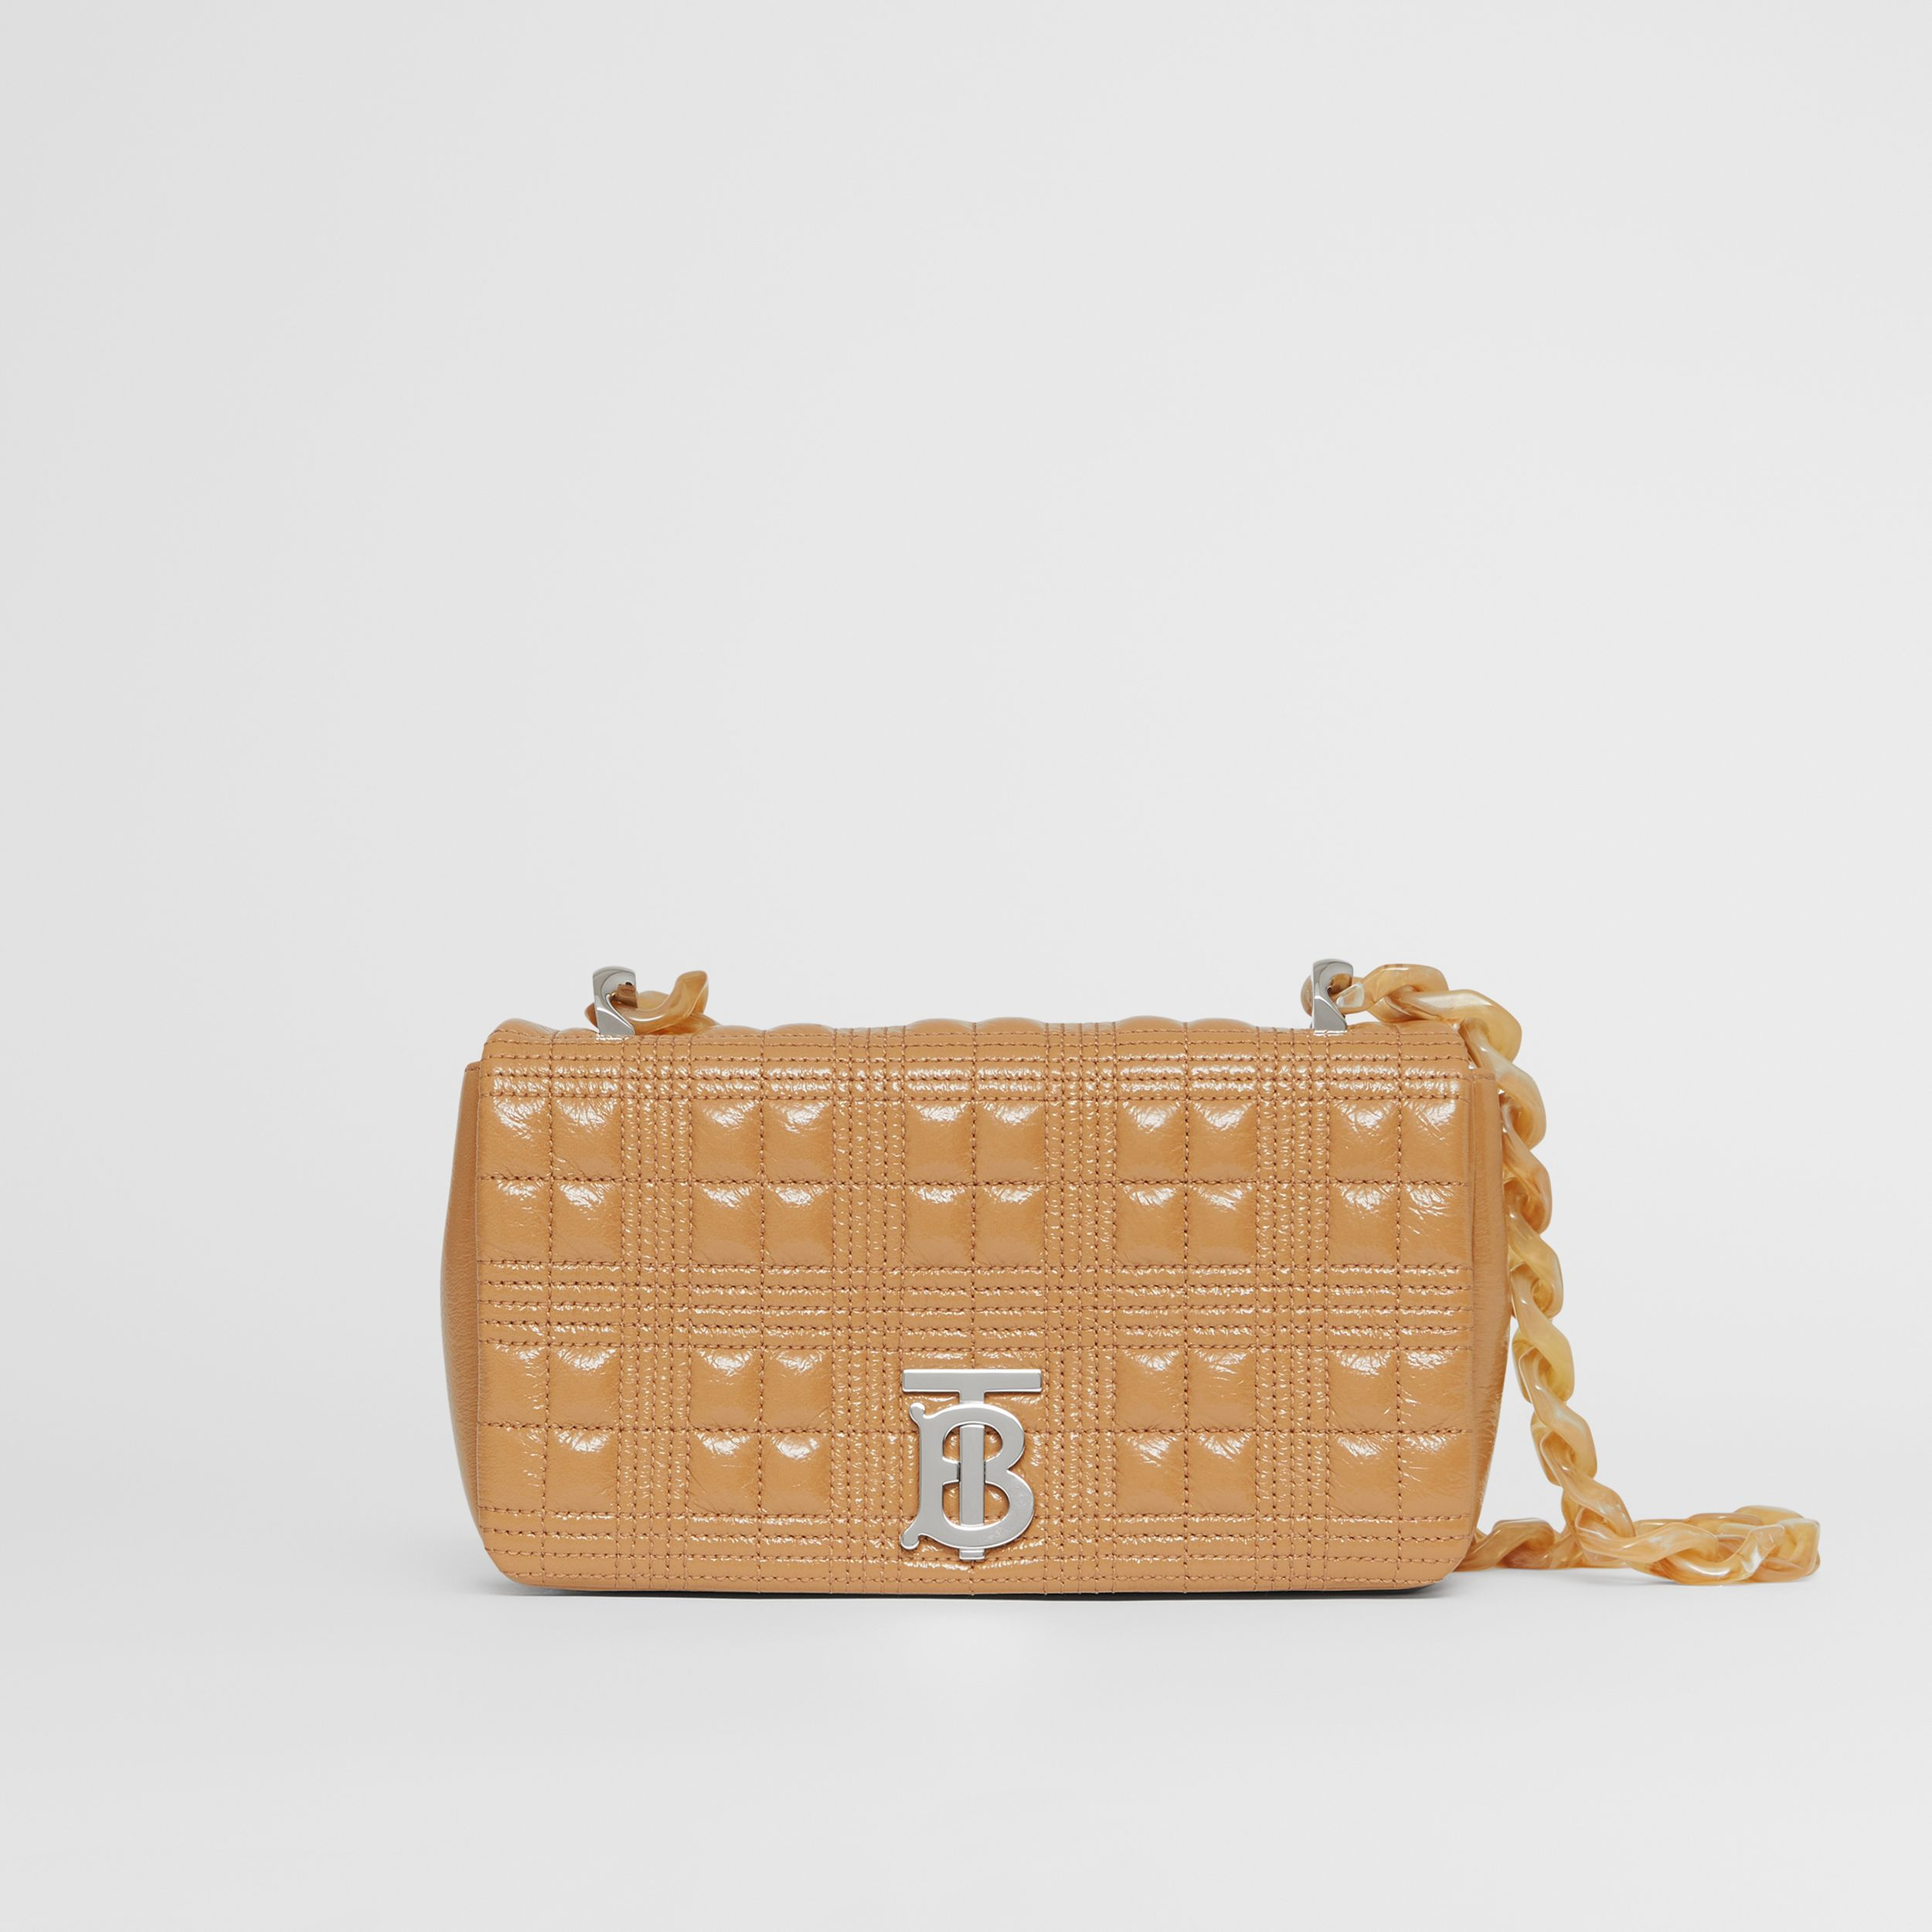 Small Quilted Lambskin Lola Bag in Camel - Women | Burberry - 4